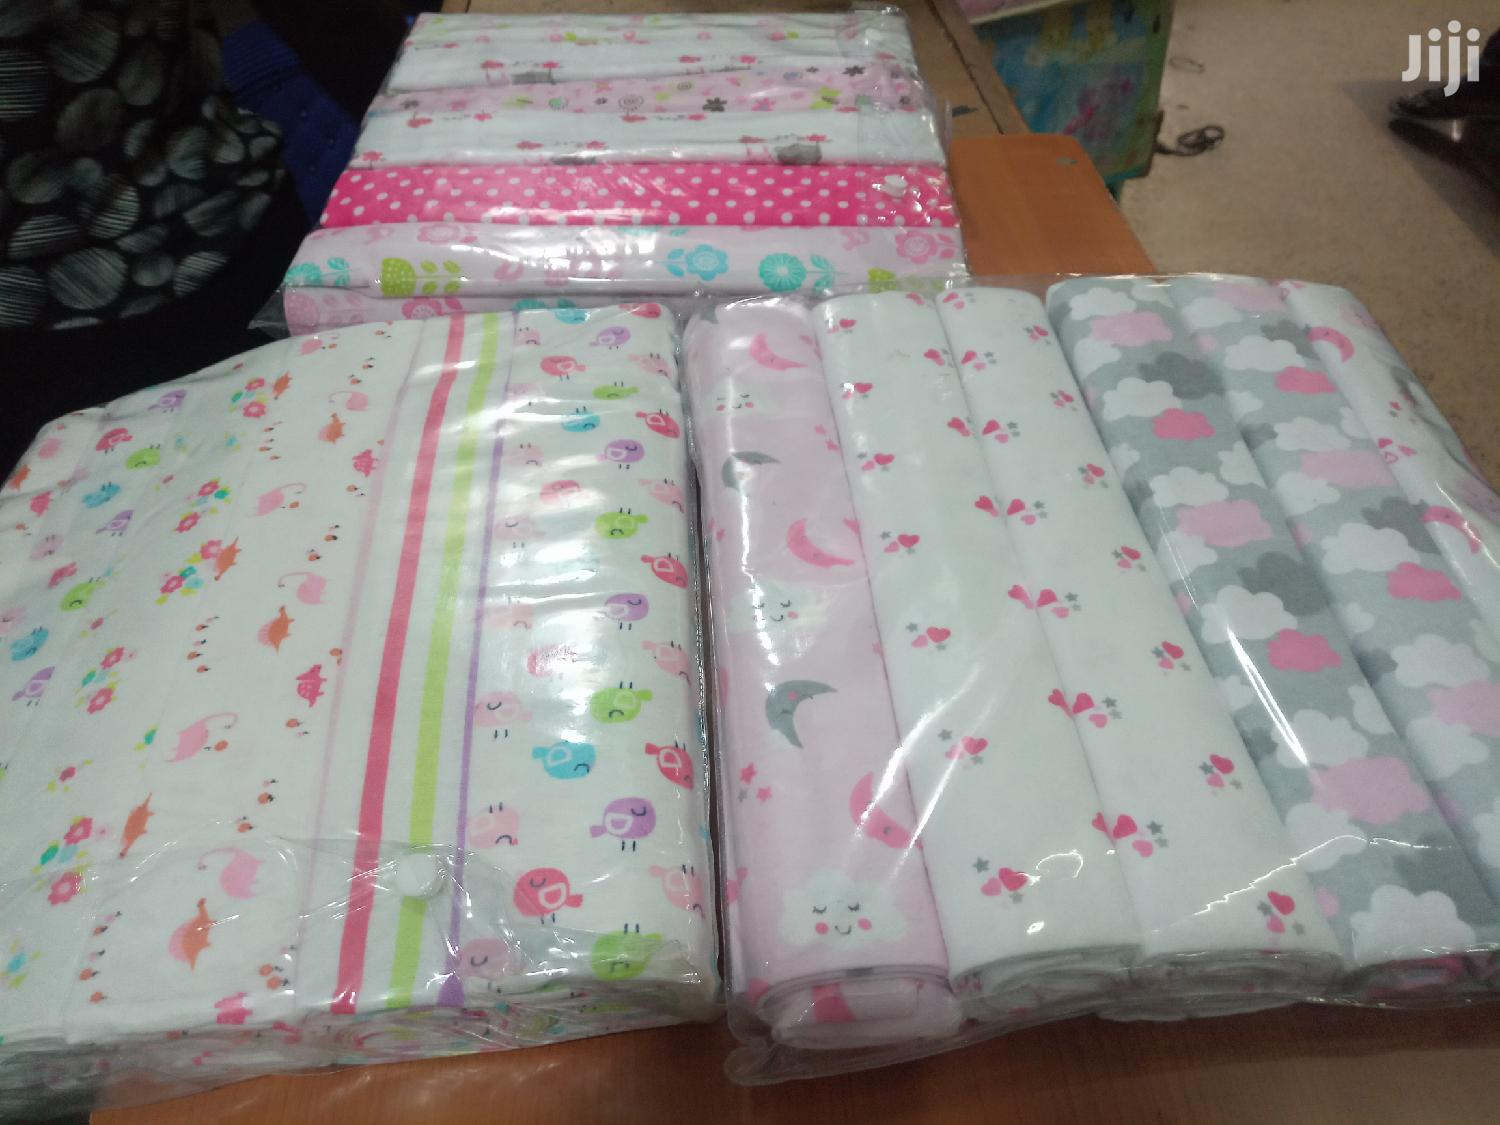 Baby Cotton Bed Sheets | Baby & Child Care for sale in Kampala, Central Region, Uganda